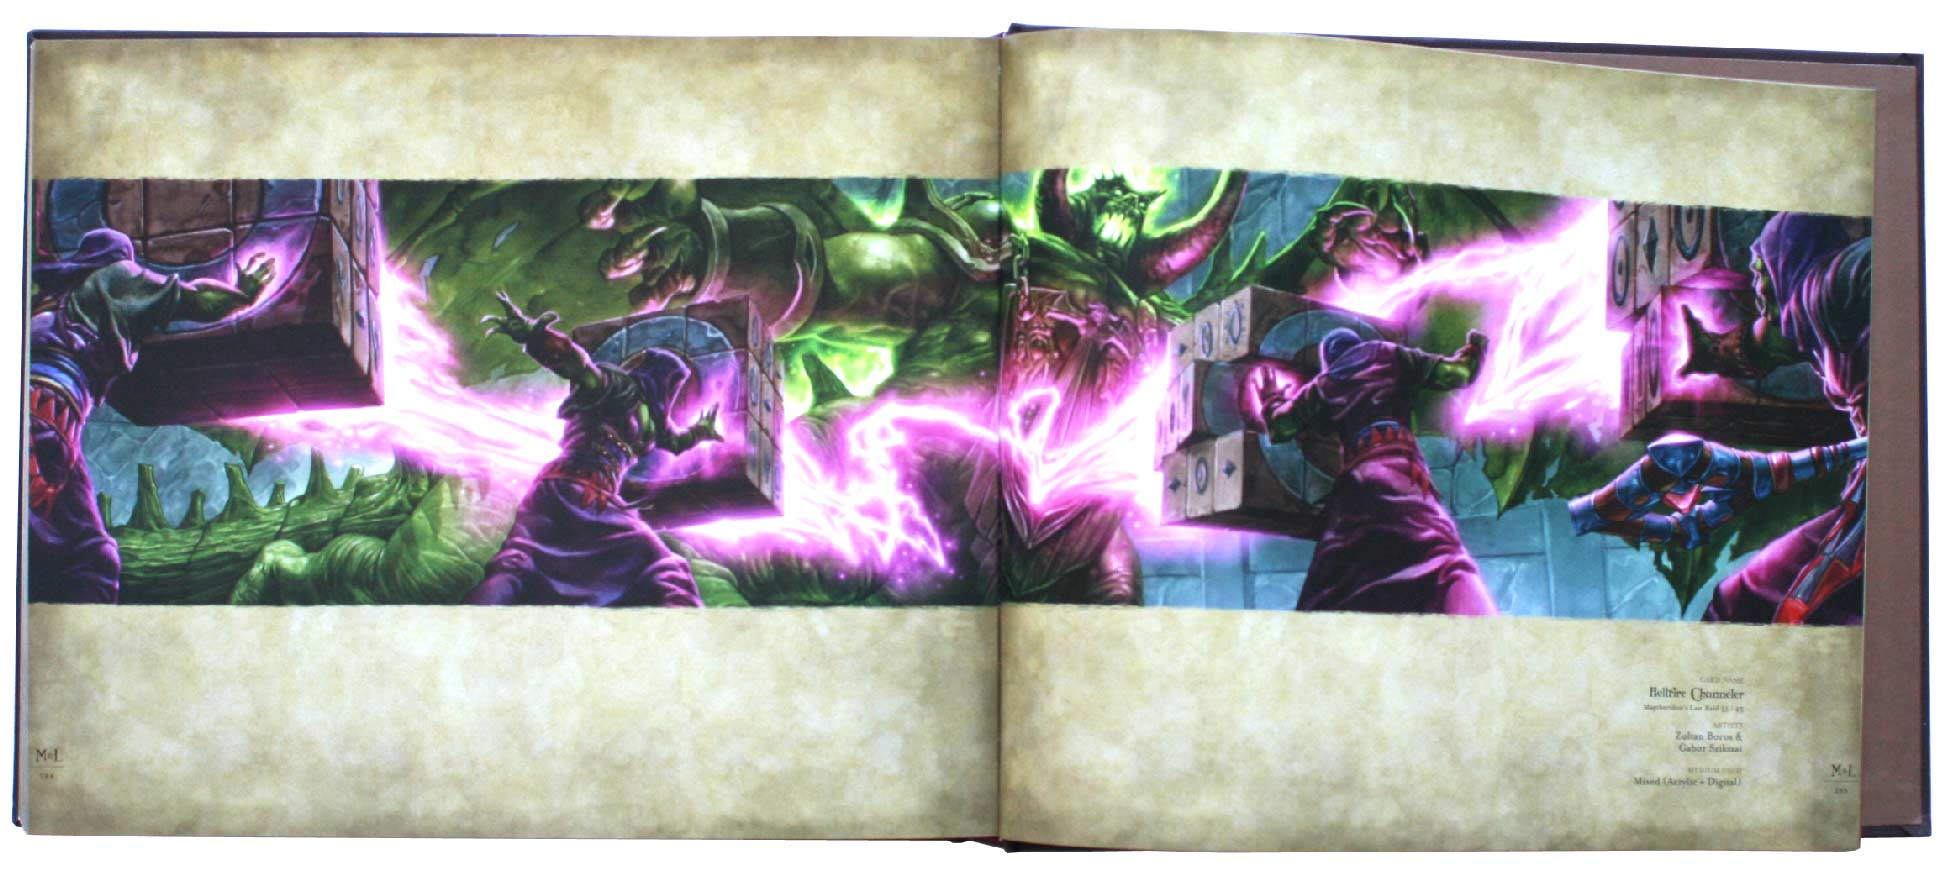 page 284 et 285 de l&#039;art book : The Art of the Trading Card Game (World of Wacraft)